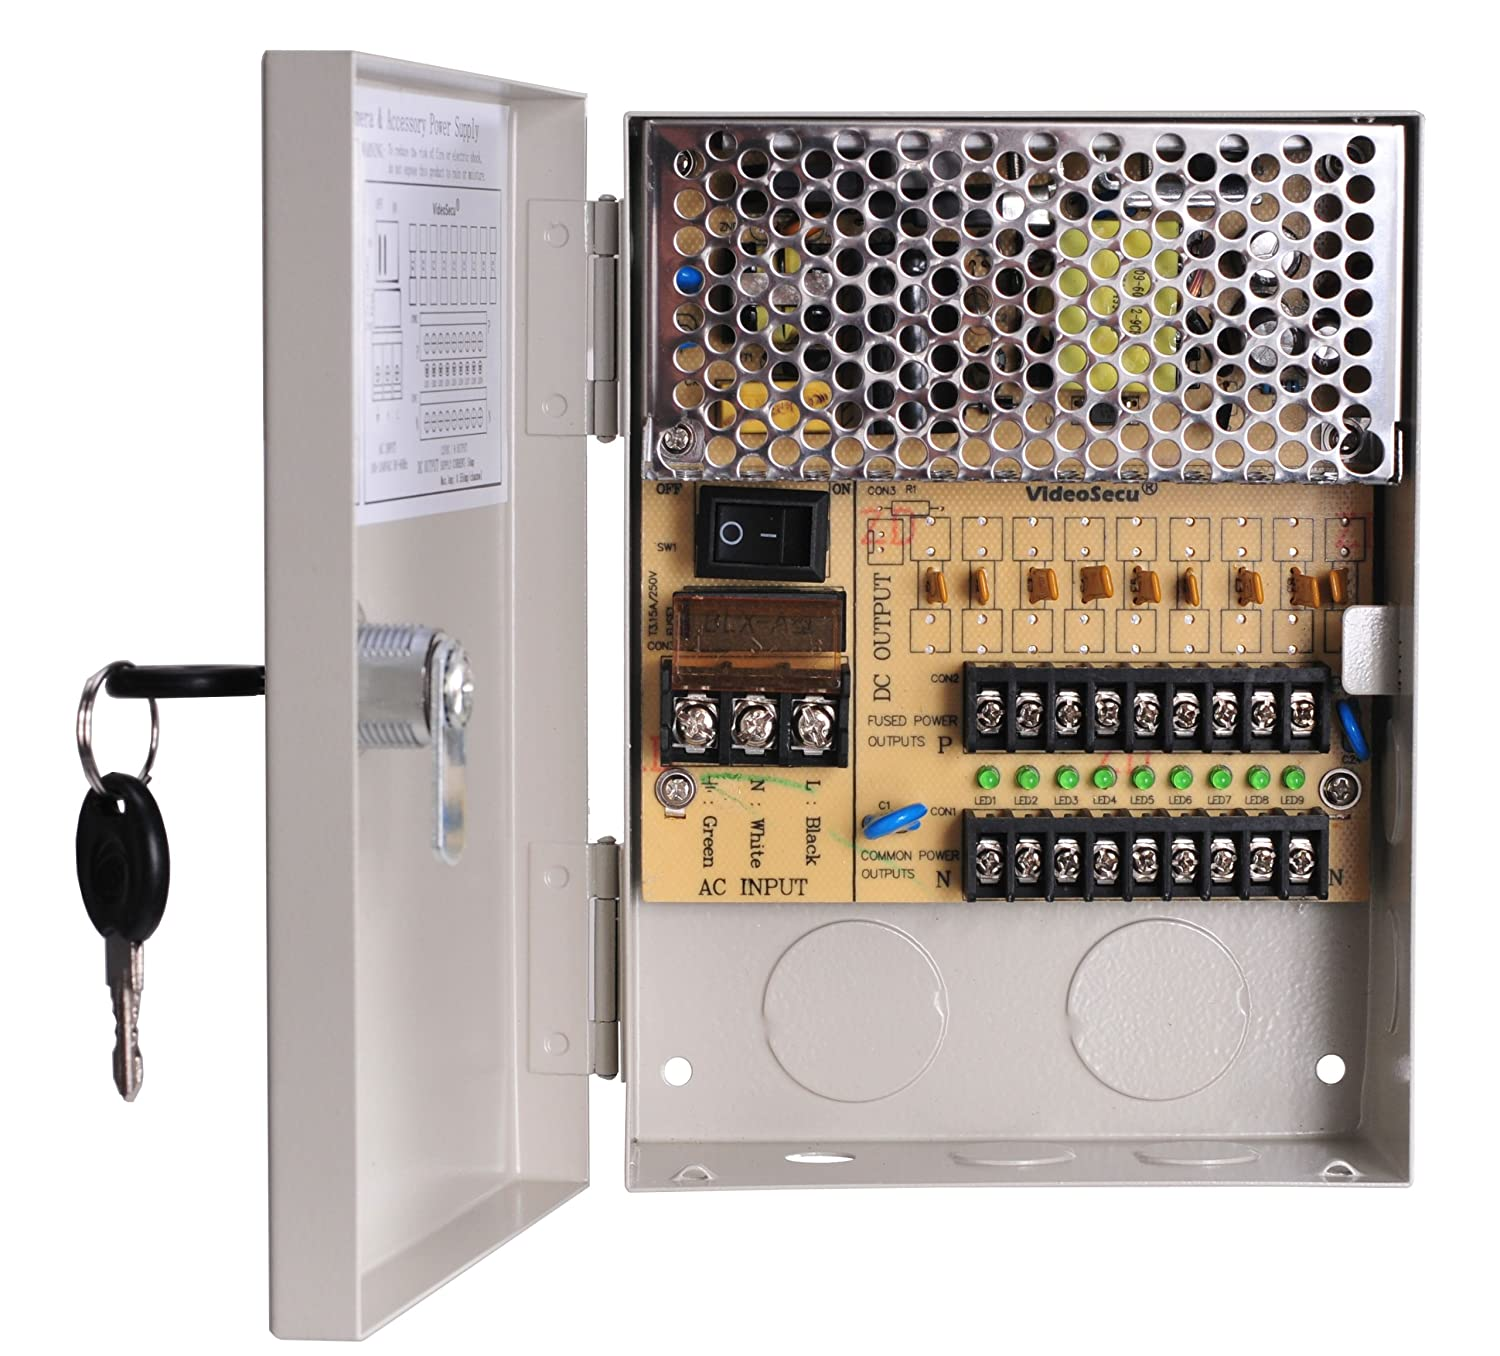 VideoSecu Key Lock 9 Output 12 V DC CCTV Distributed Power Supply Box Auto Reset for Security Camera WK9